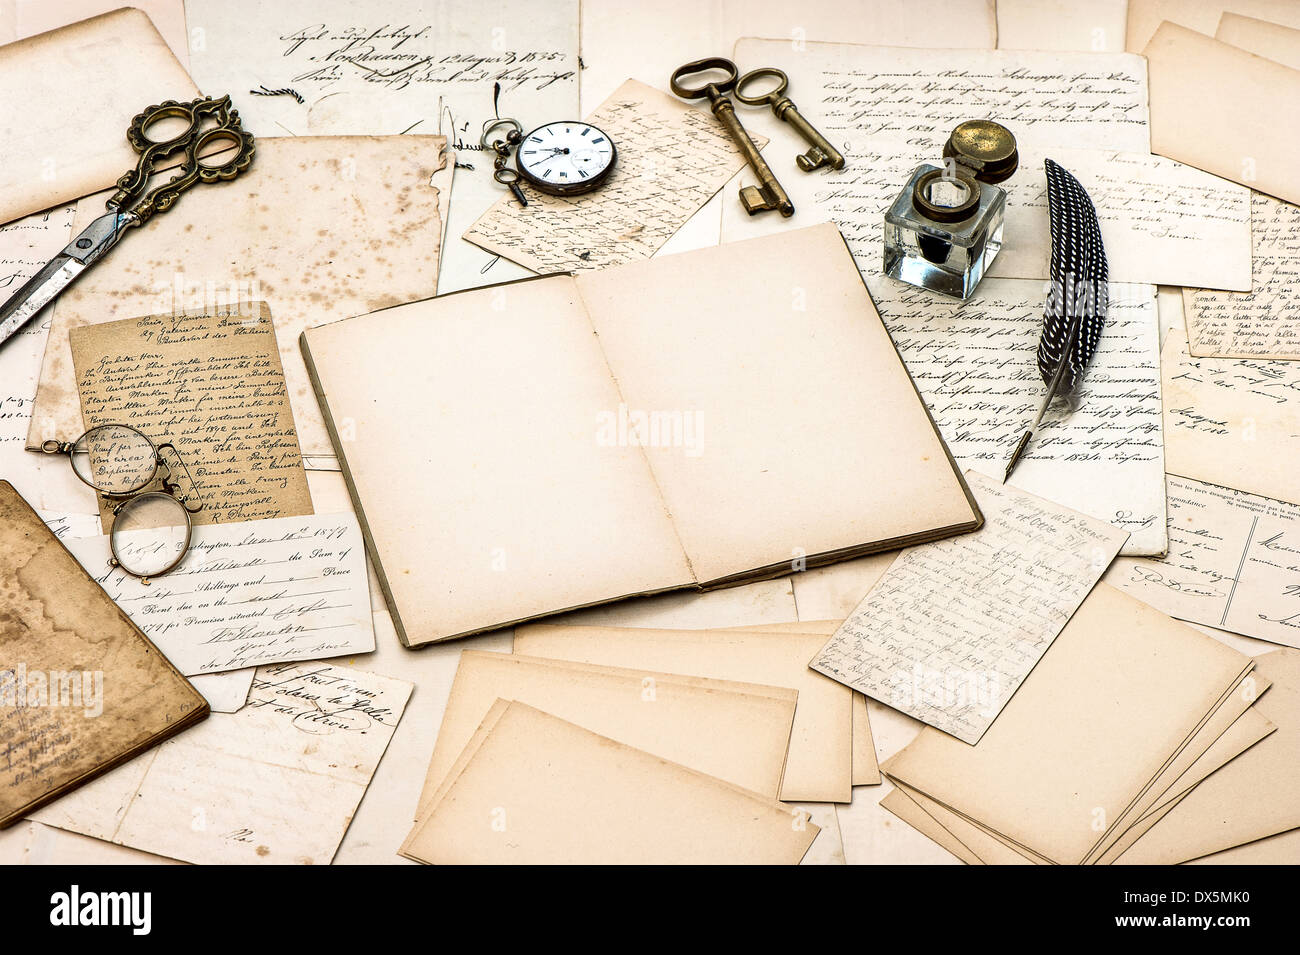 Scrapbook paper books - Stock Photo Antique Accessories Old Letters Open Diary Book And Vintage Ink Pen Nostalgic Sentimental Scrapbook Paper Background